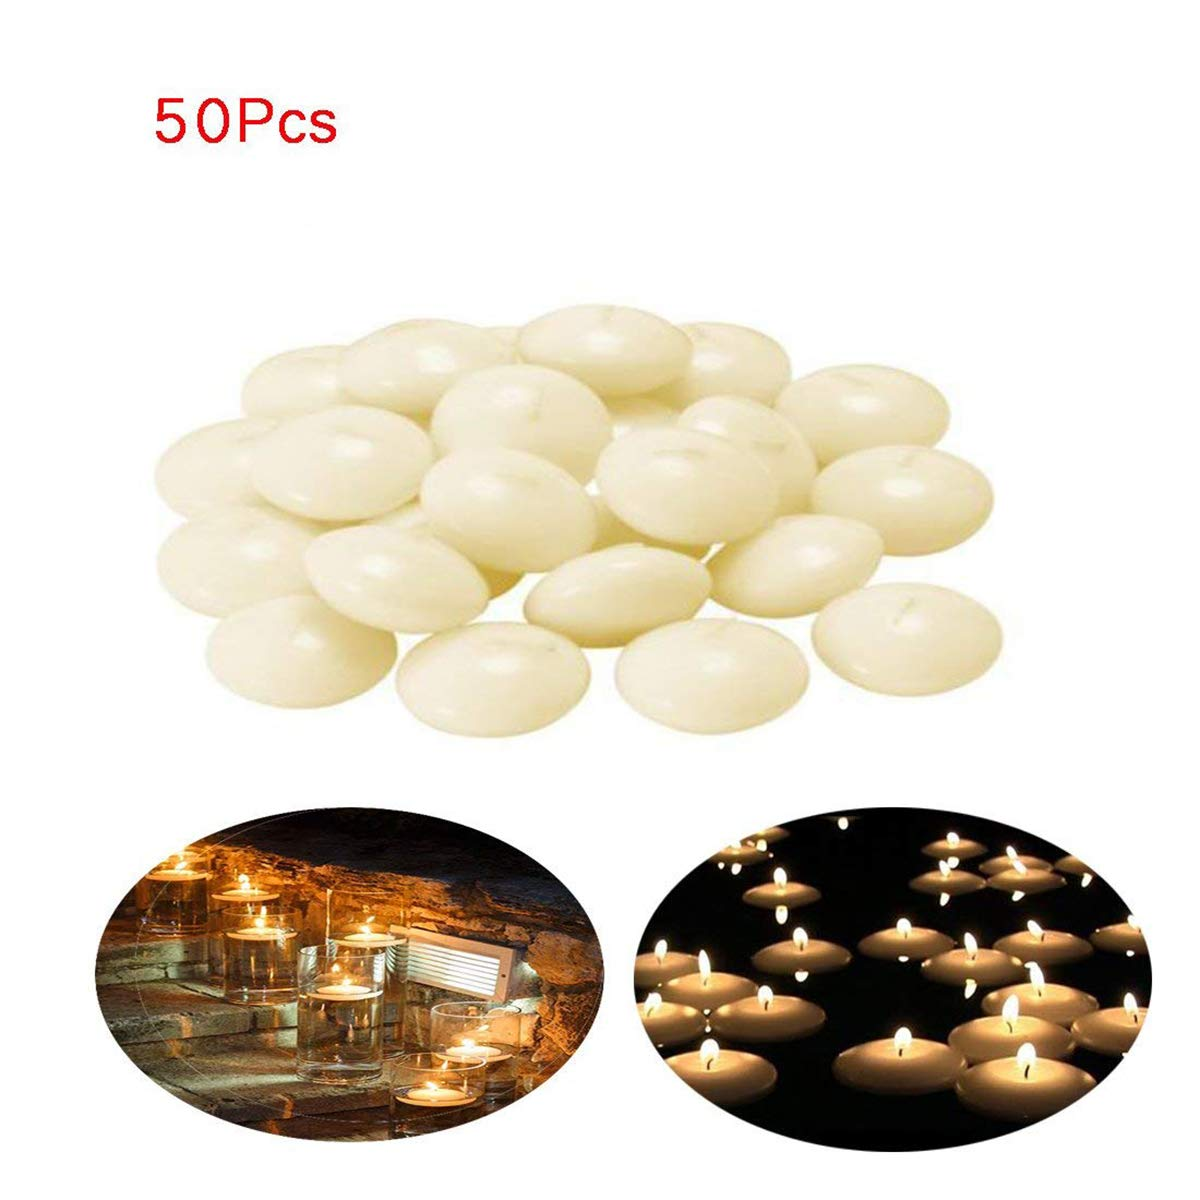 50 Pieces Unscented 1.5 Inch Small Water Floating Disc Candles for Centerpieces,Wedding,Party and Home Decoration